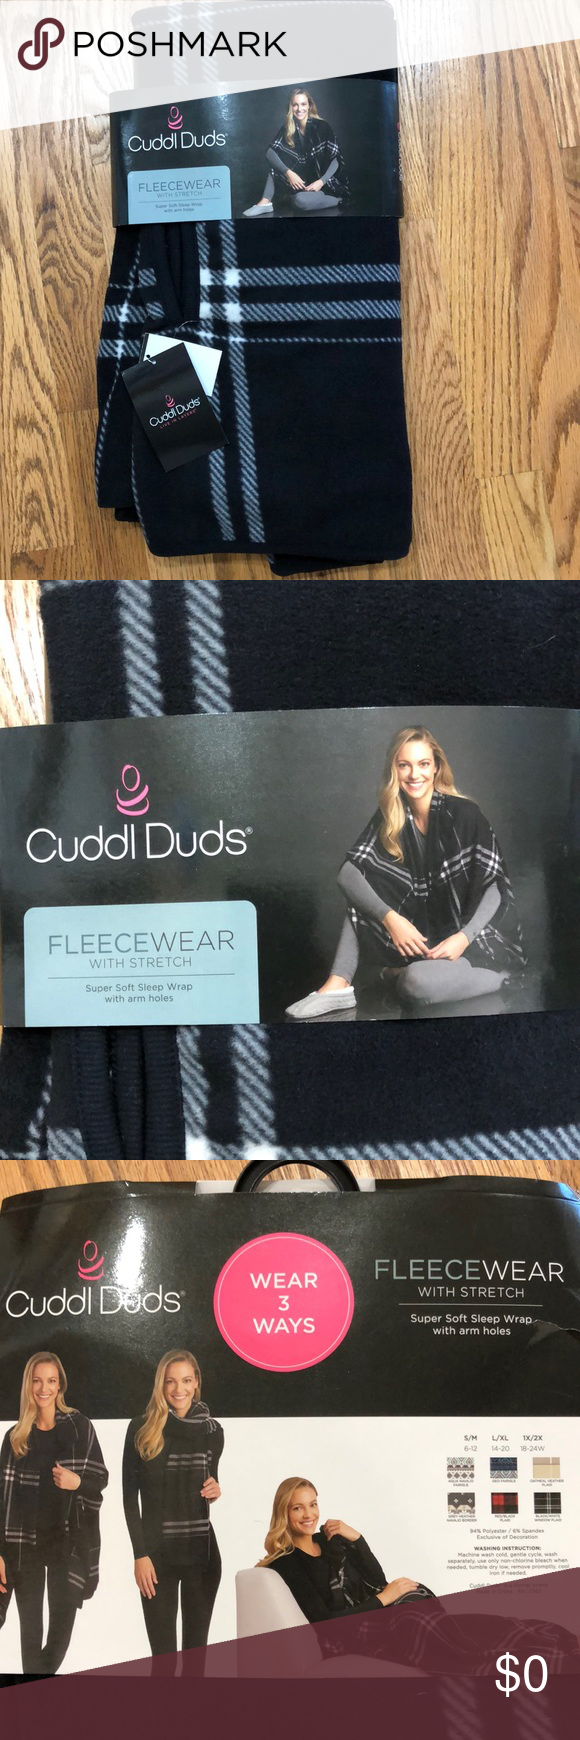 Cuddl Duds Nwt Cuddl Duds Clothes Design Things To Sell